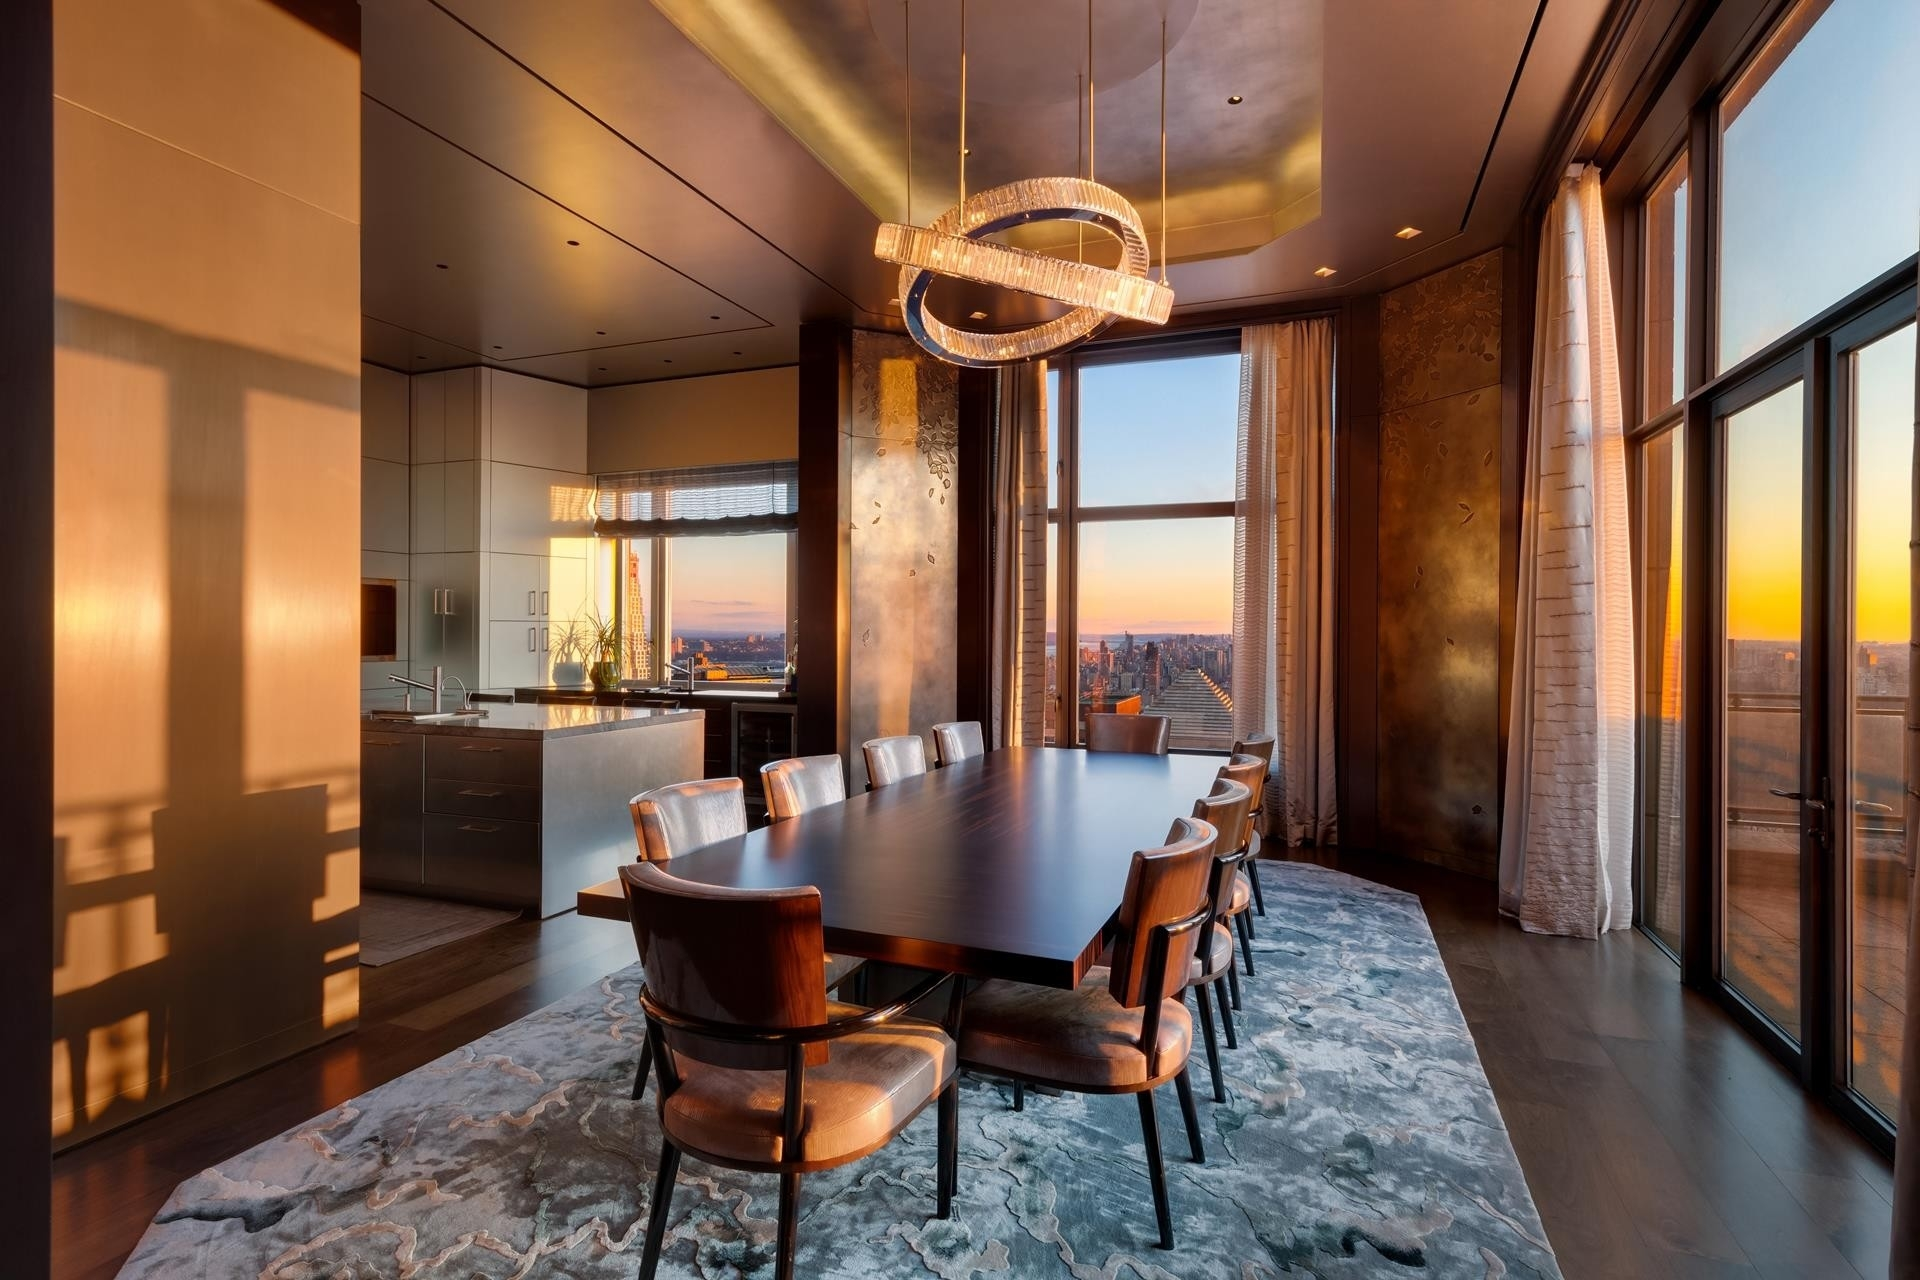 3. Condominiums для того Продажа на 15 Cpw, 15 CENTRAL PARK W, PH41 Lincoln Square, New York, NY 10023